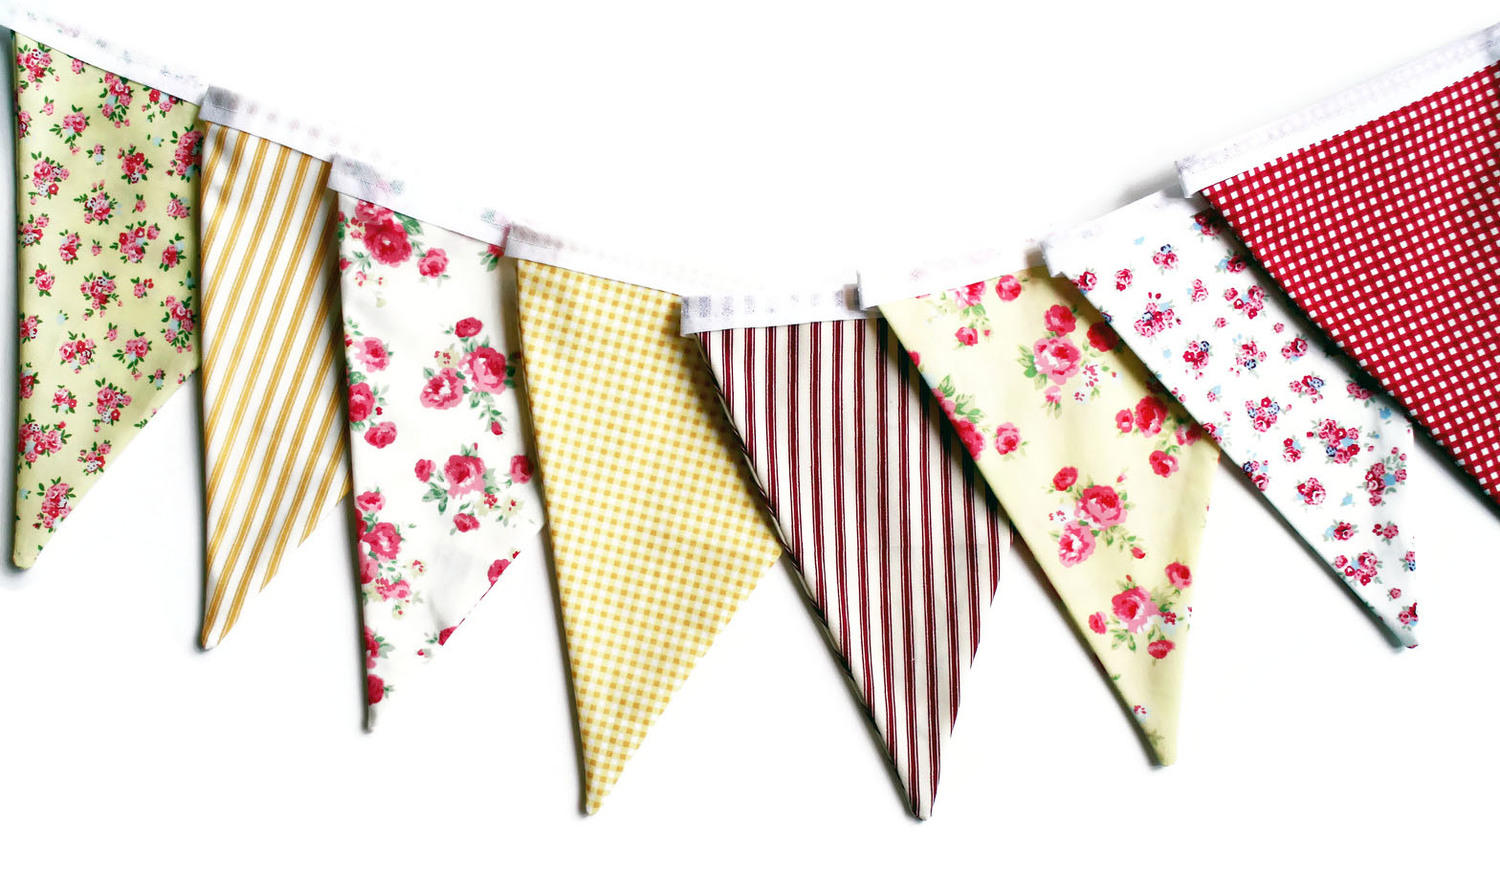 yellow floral vintage bunting handmade by monica bunting for all